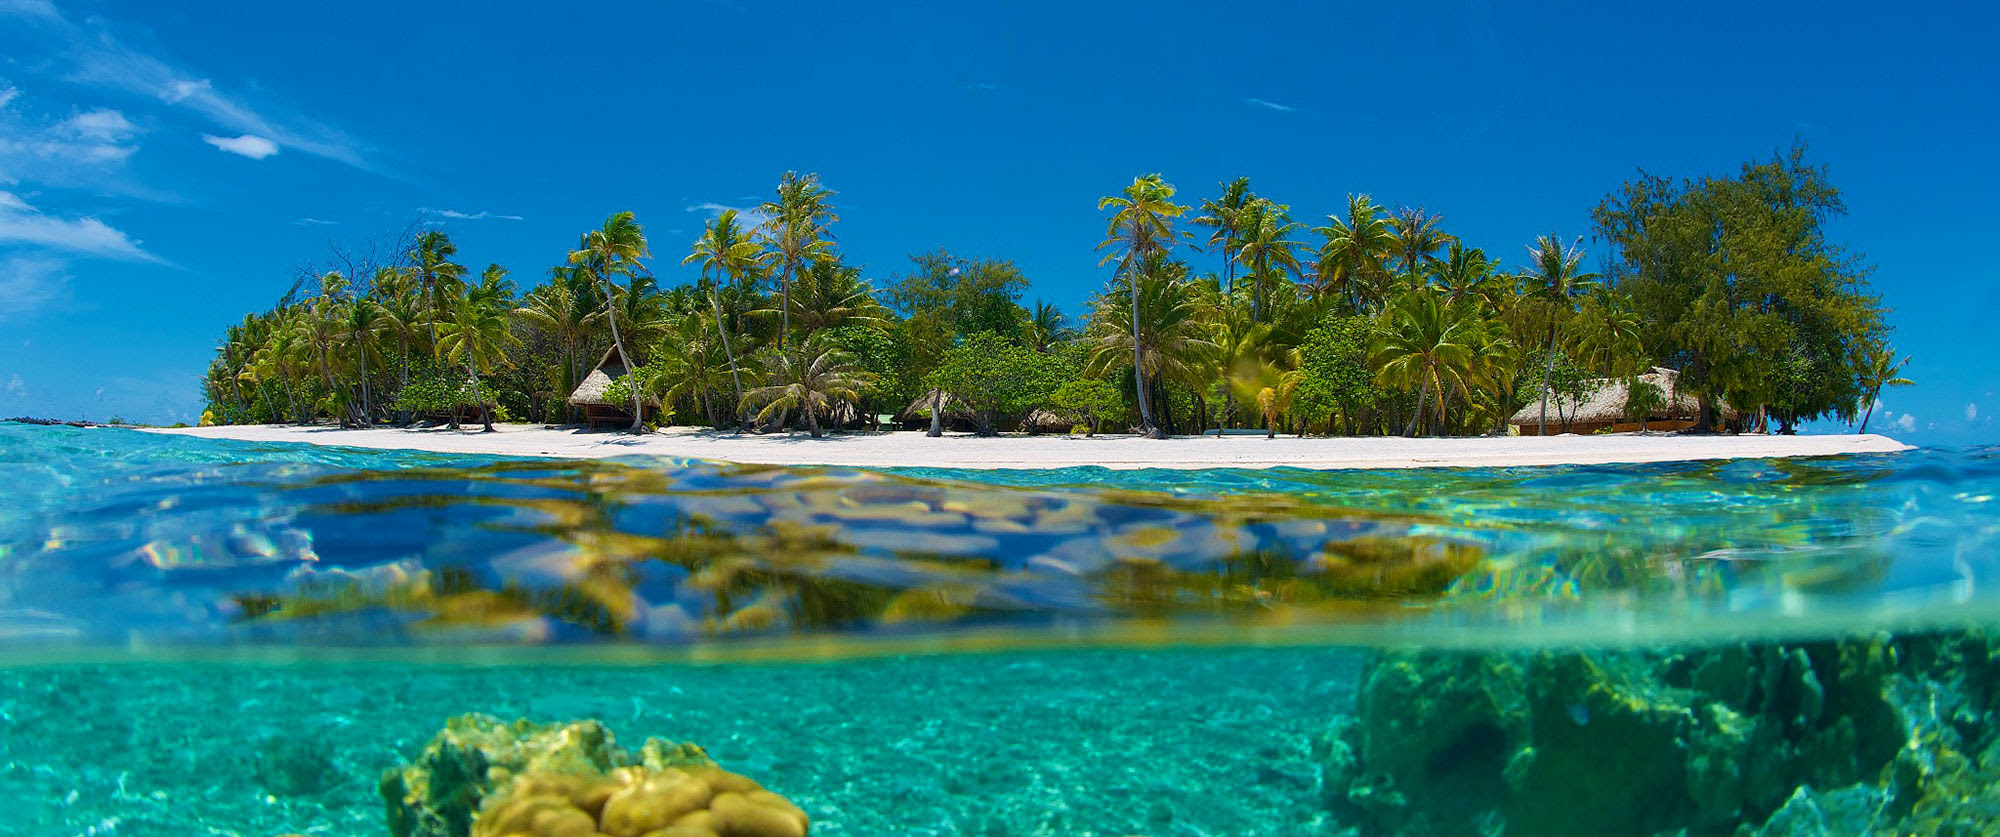 Islands Beaches  Reefs  Exotic Island Vacations